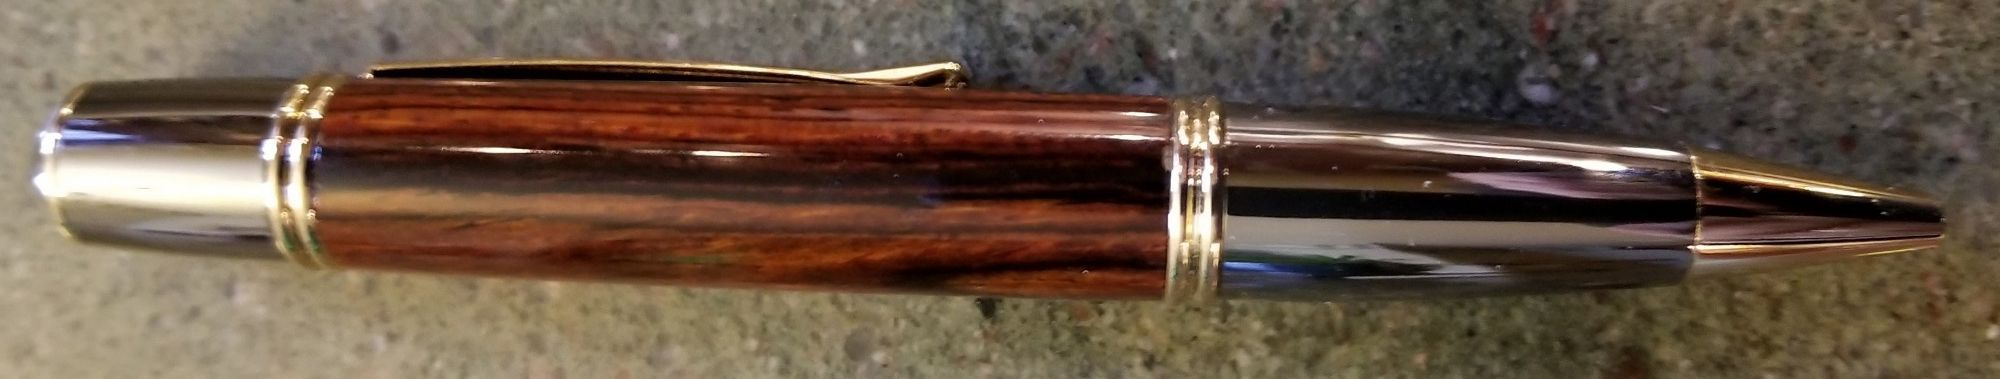 Gatsby Style Pen in Cocobola